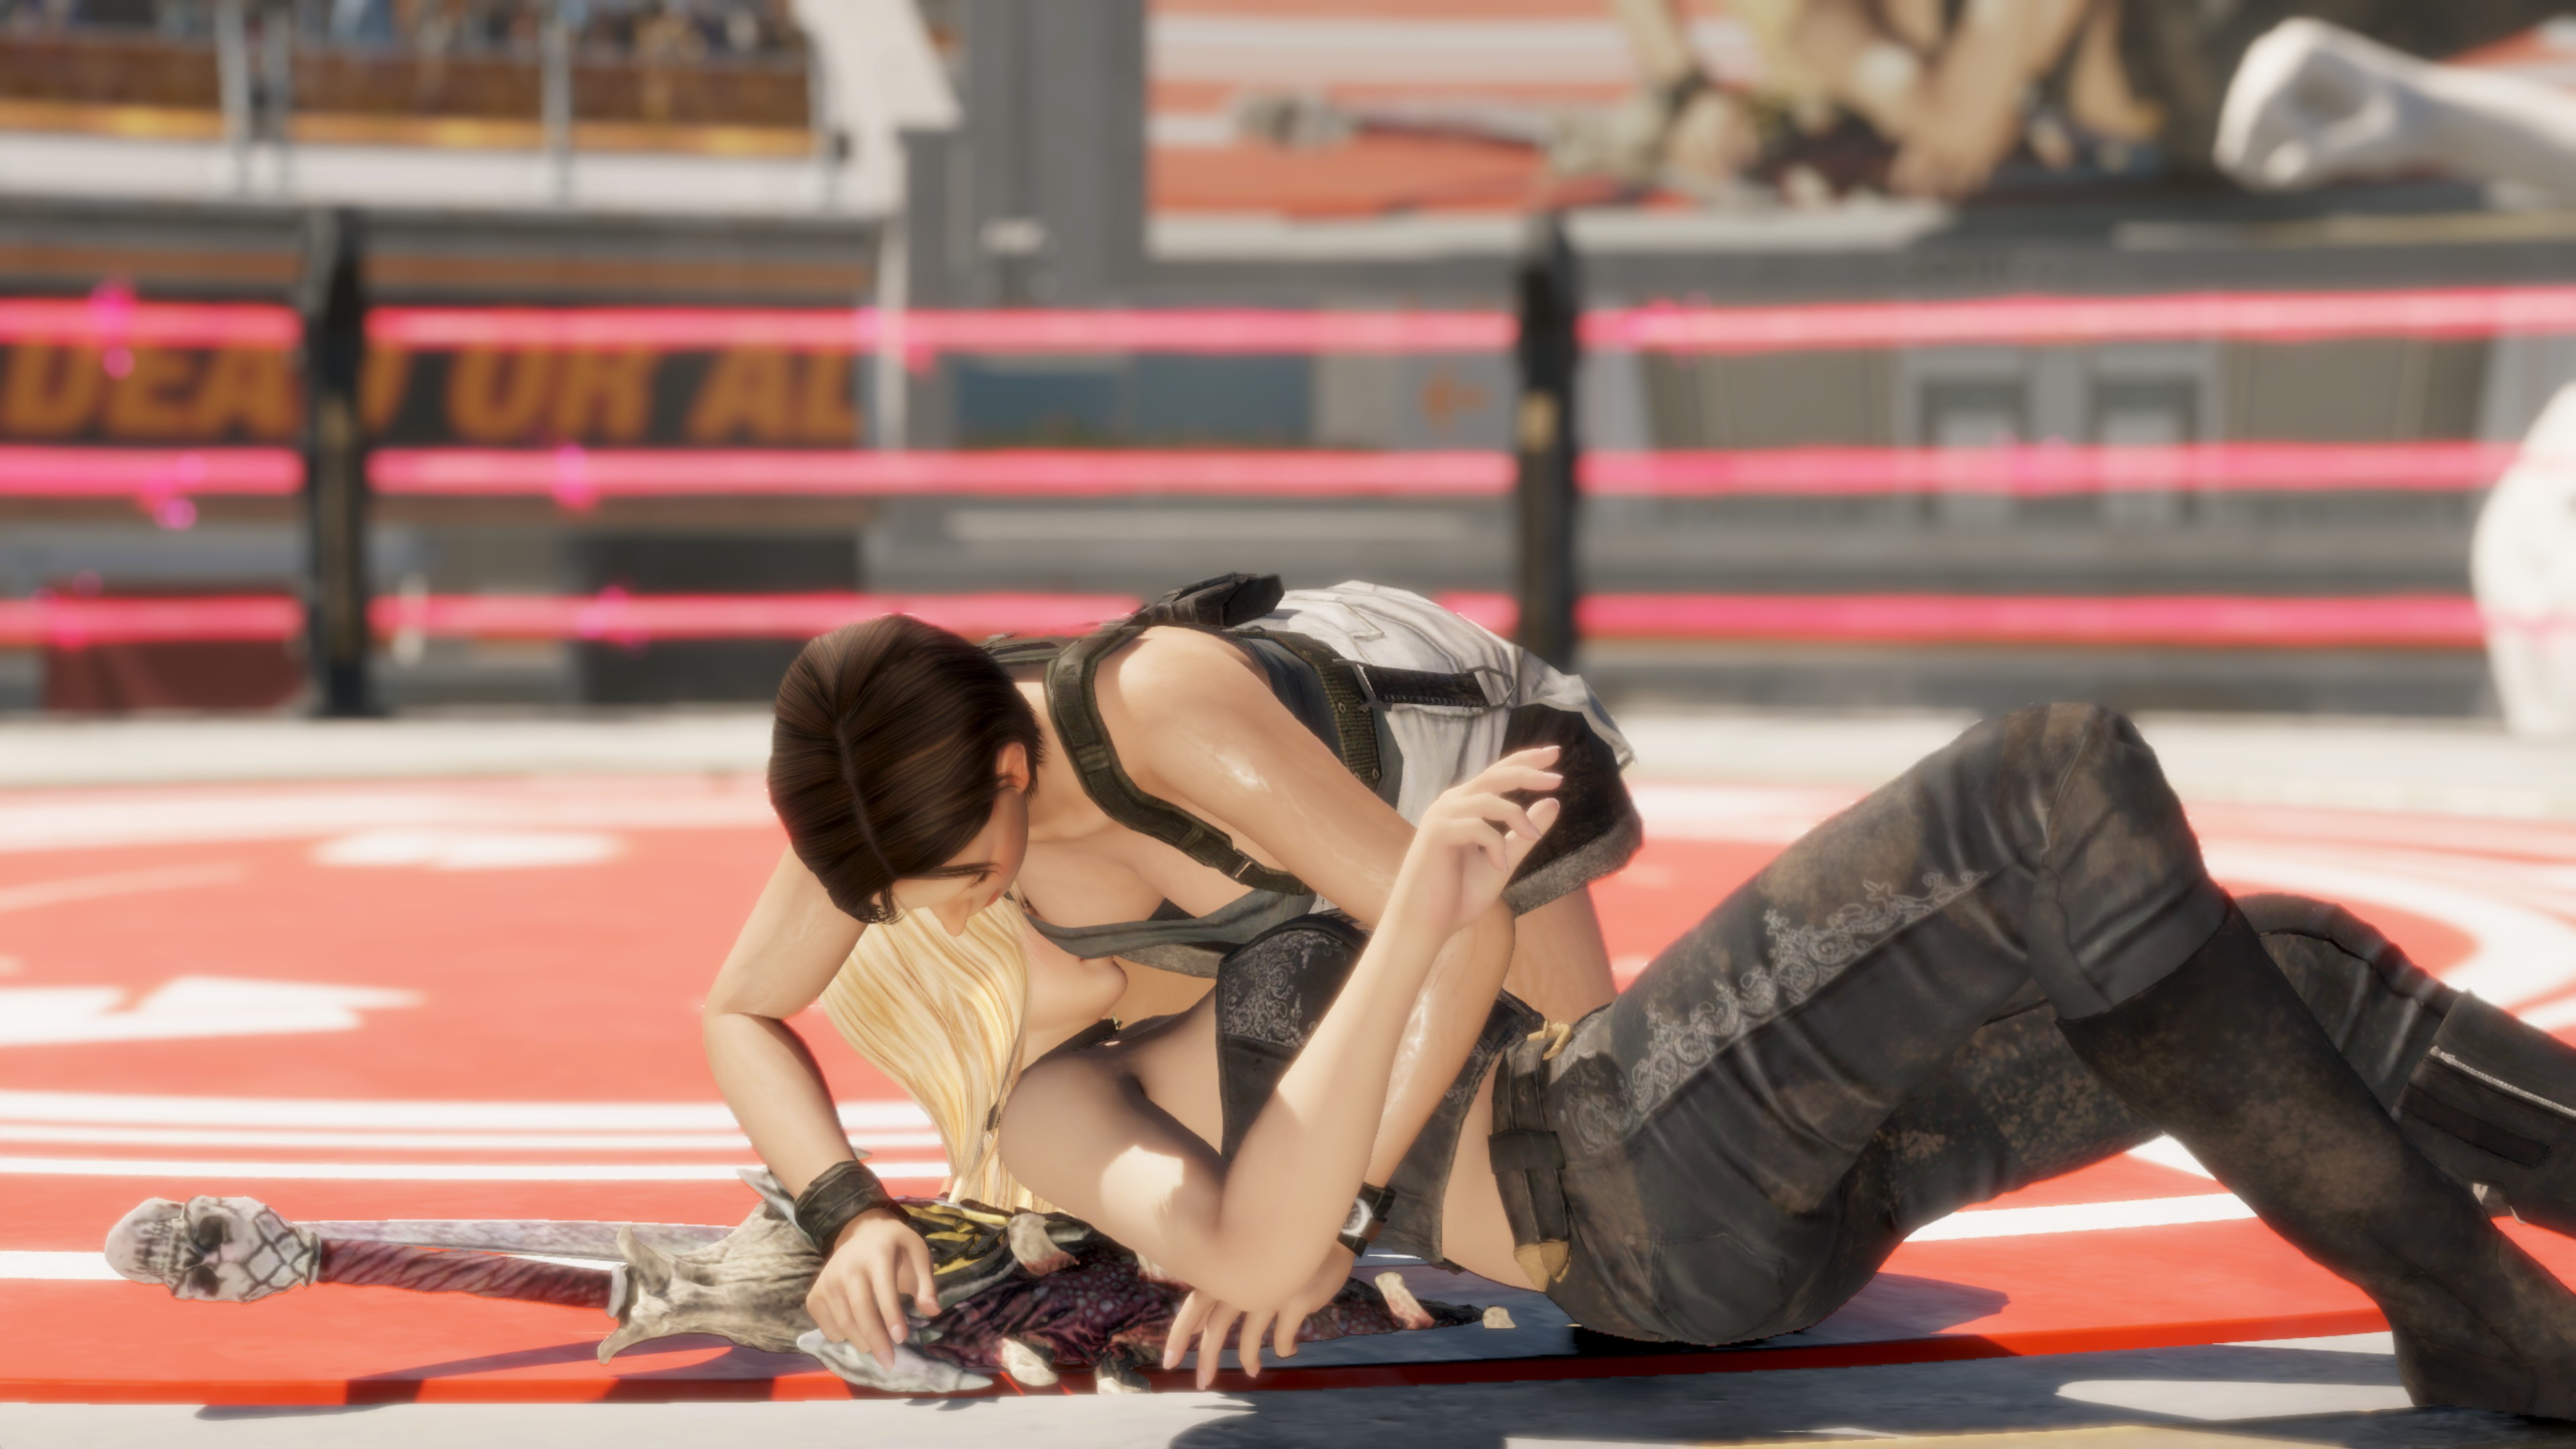 Dead or Alive 6 - Dead or Alive 6